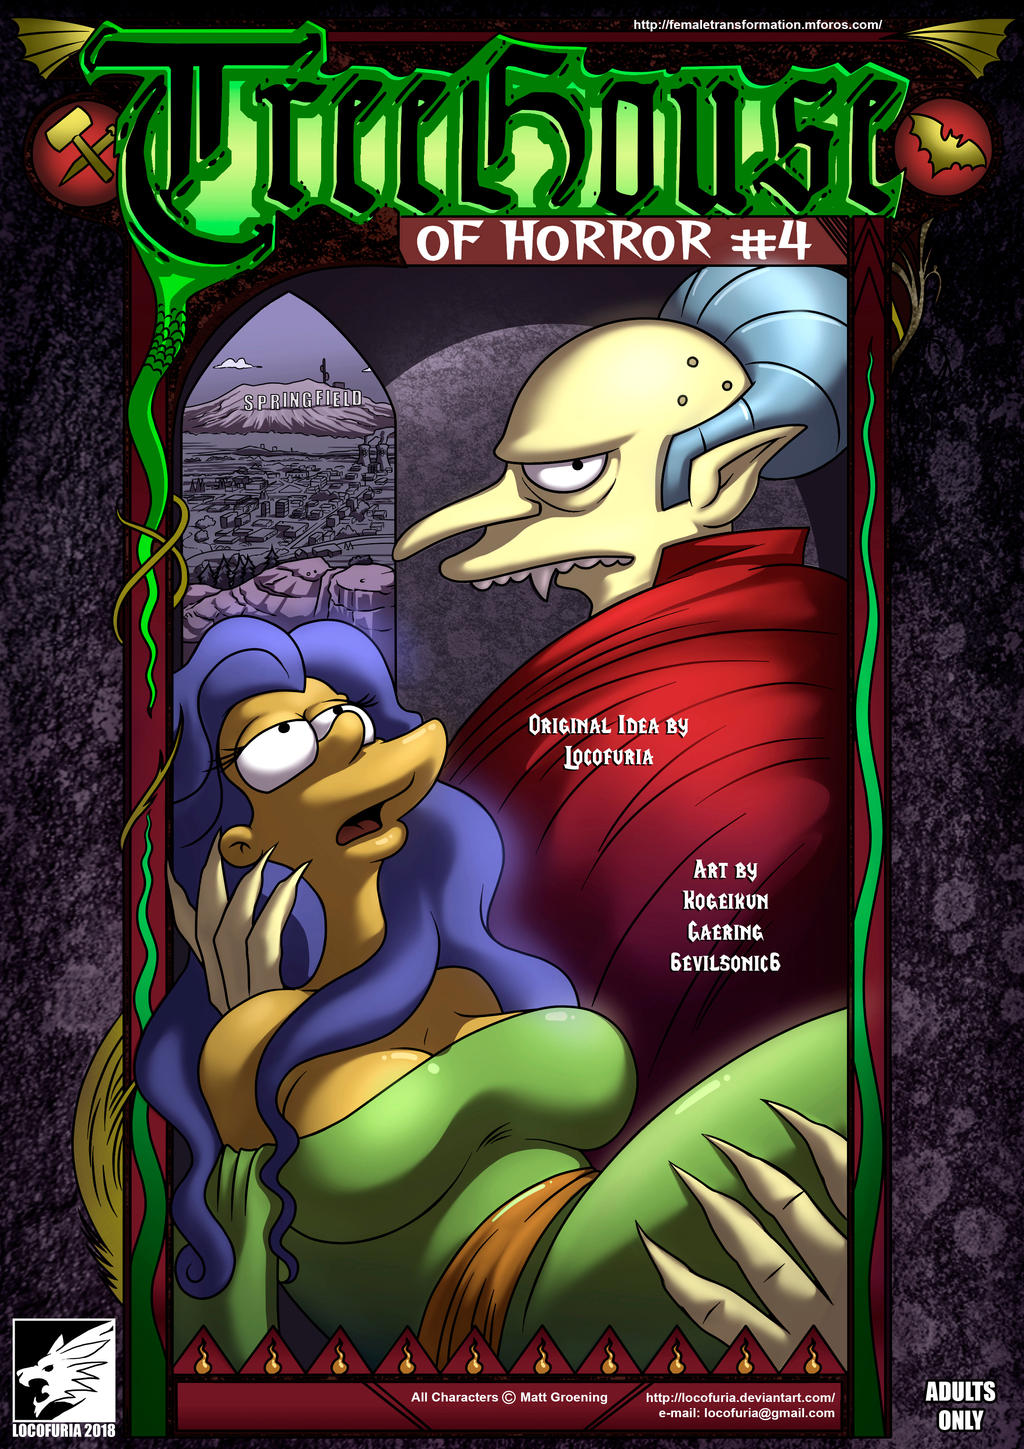 Simpsons Treehouse Of Horror 4 However, we managed to discover that the most significant portion of the traffic comes from usa (27,8%). simpsons treehouse of horror 4